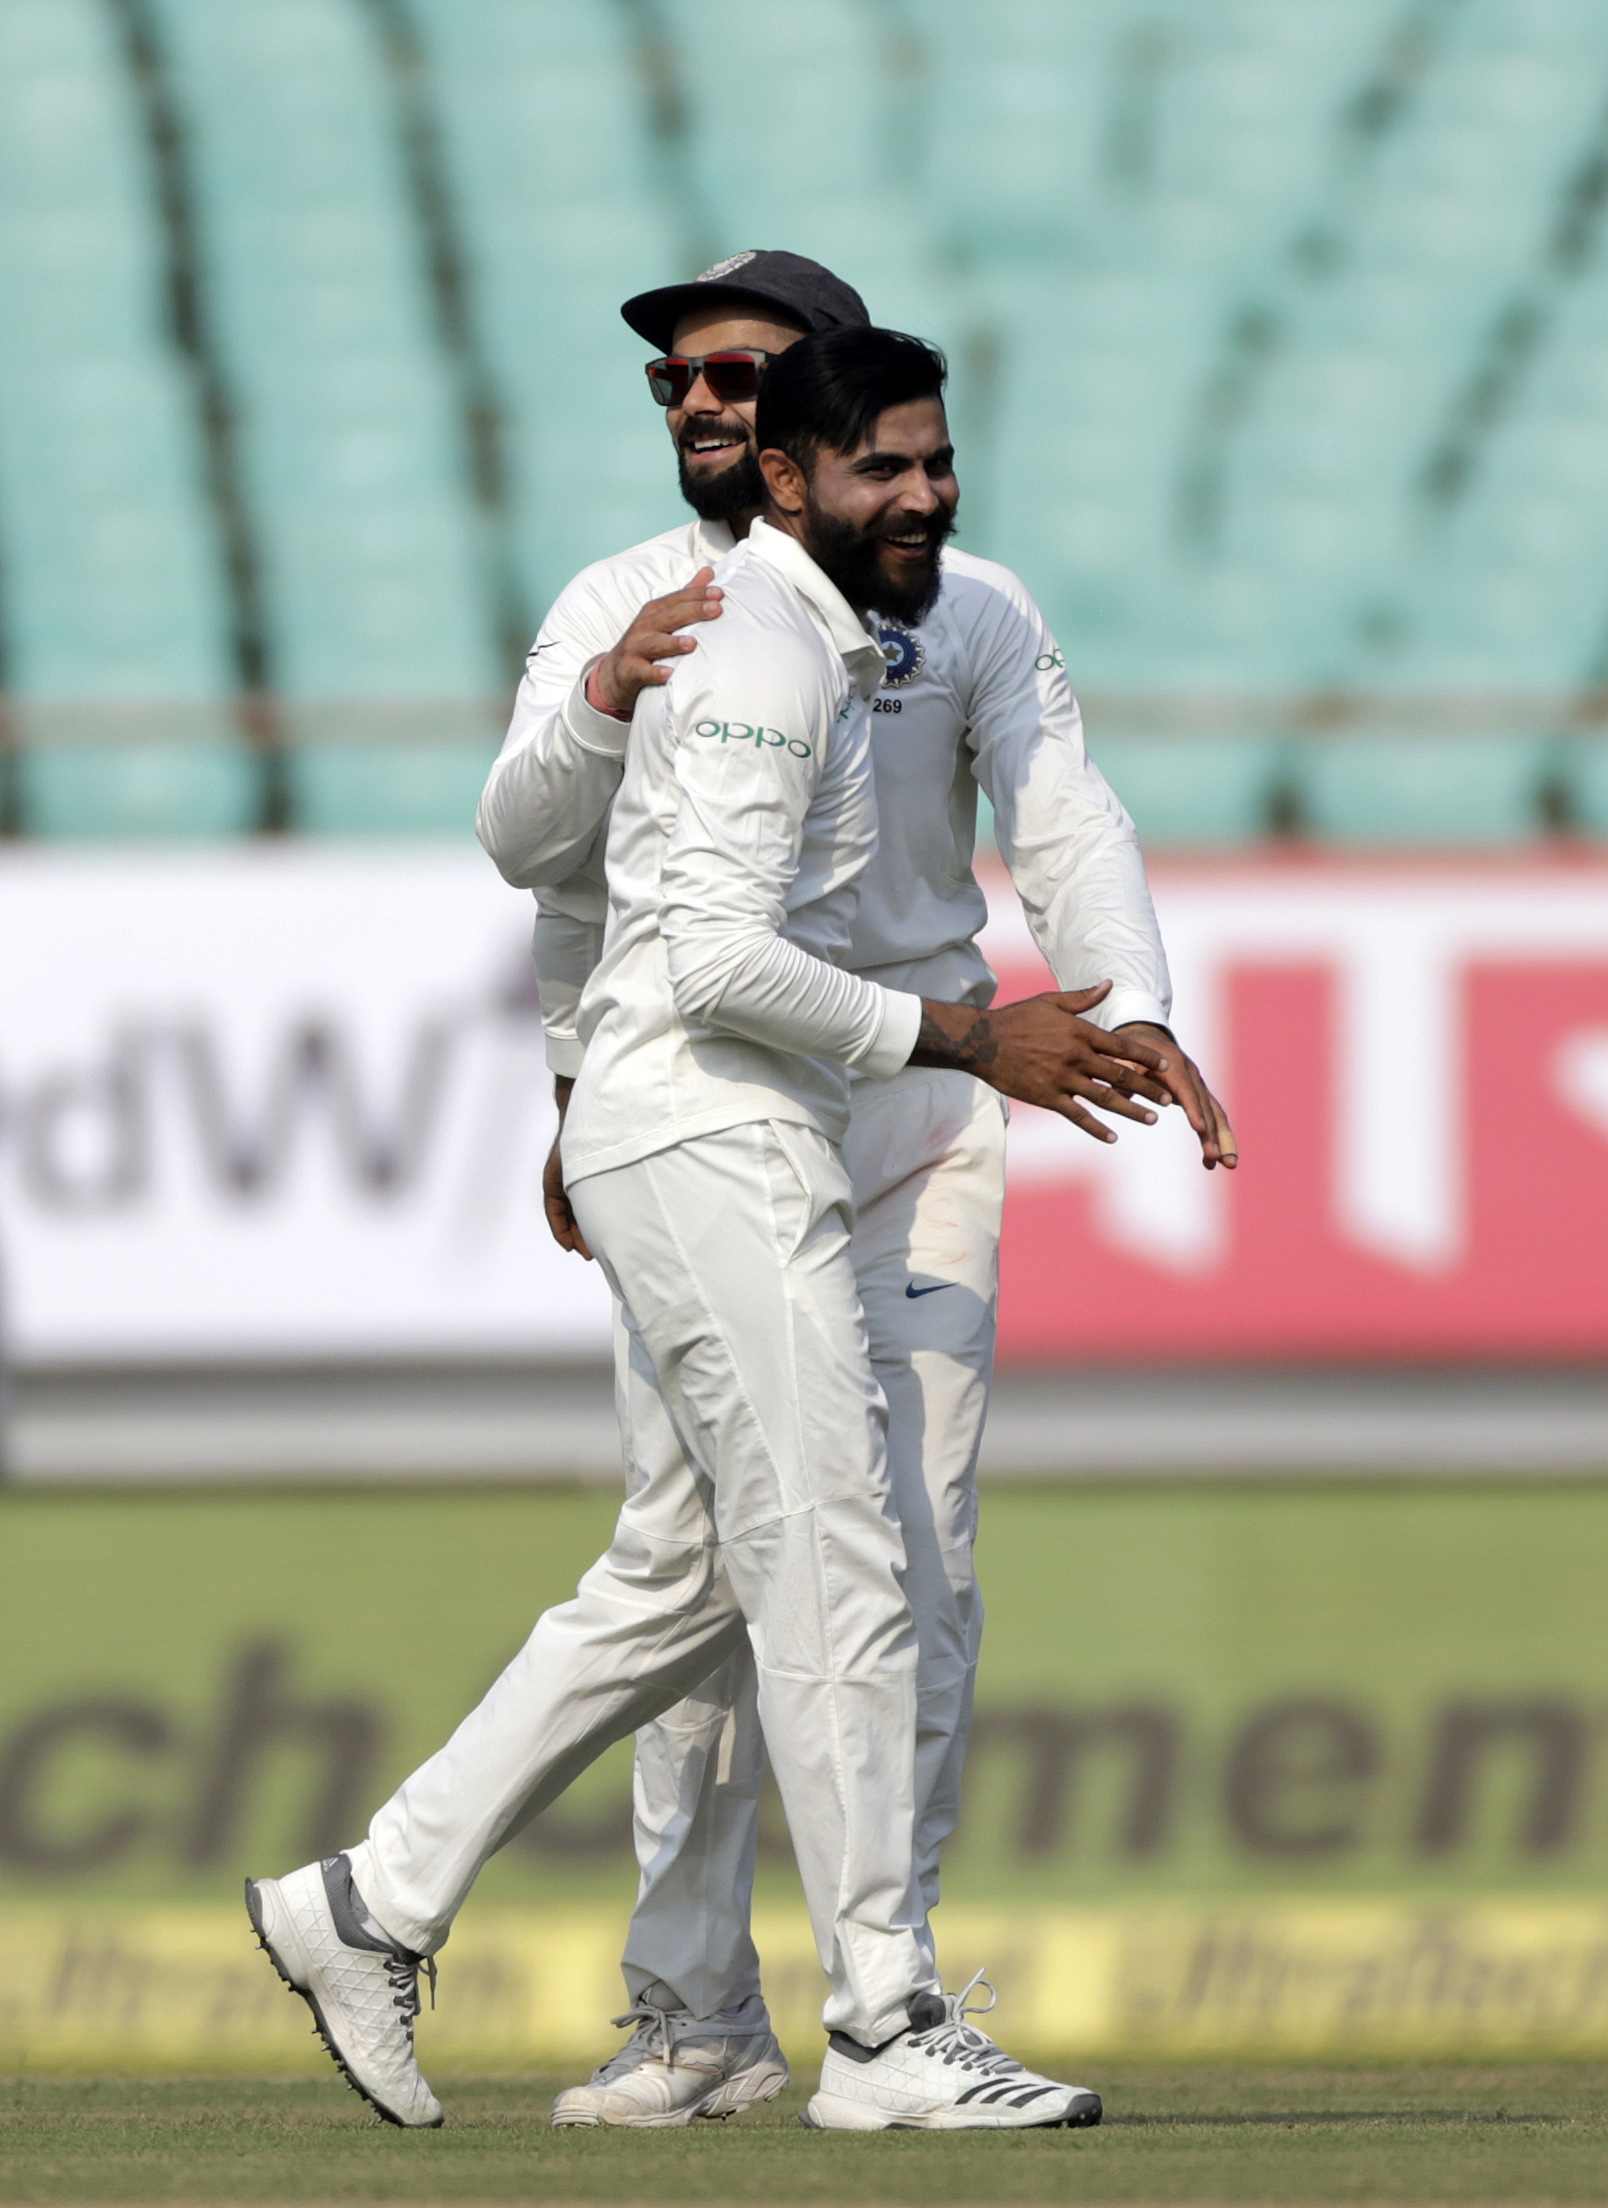 Indian cricketer Ravindra Jadeja celebrates after dismissin West Indies' Sunil Ambris during the second day of the first cricket test match between India and West Indies in Rajkot - AP